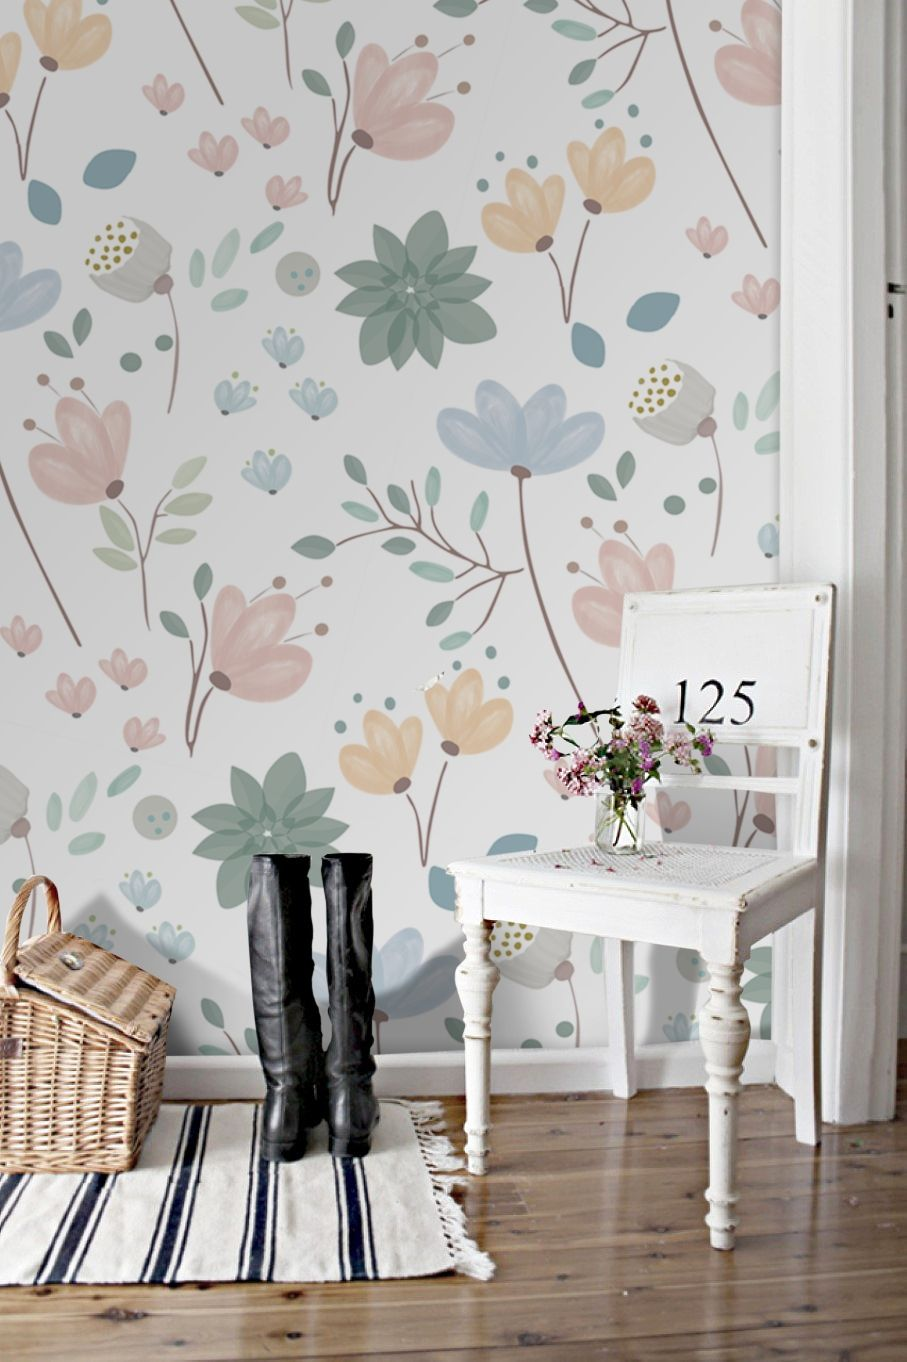 37 Spring Floral Removable Wallpaper Ideas For Home Decor Decorhit Com Interior Paint Colors For Living Room Floral Wallpaper Home Decor